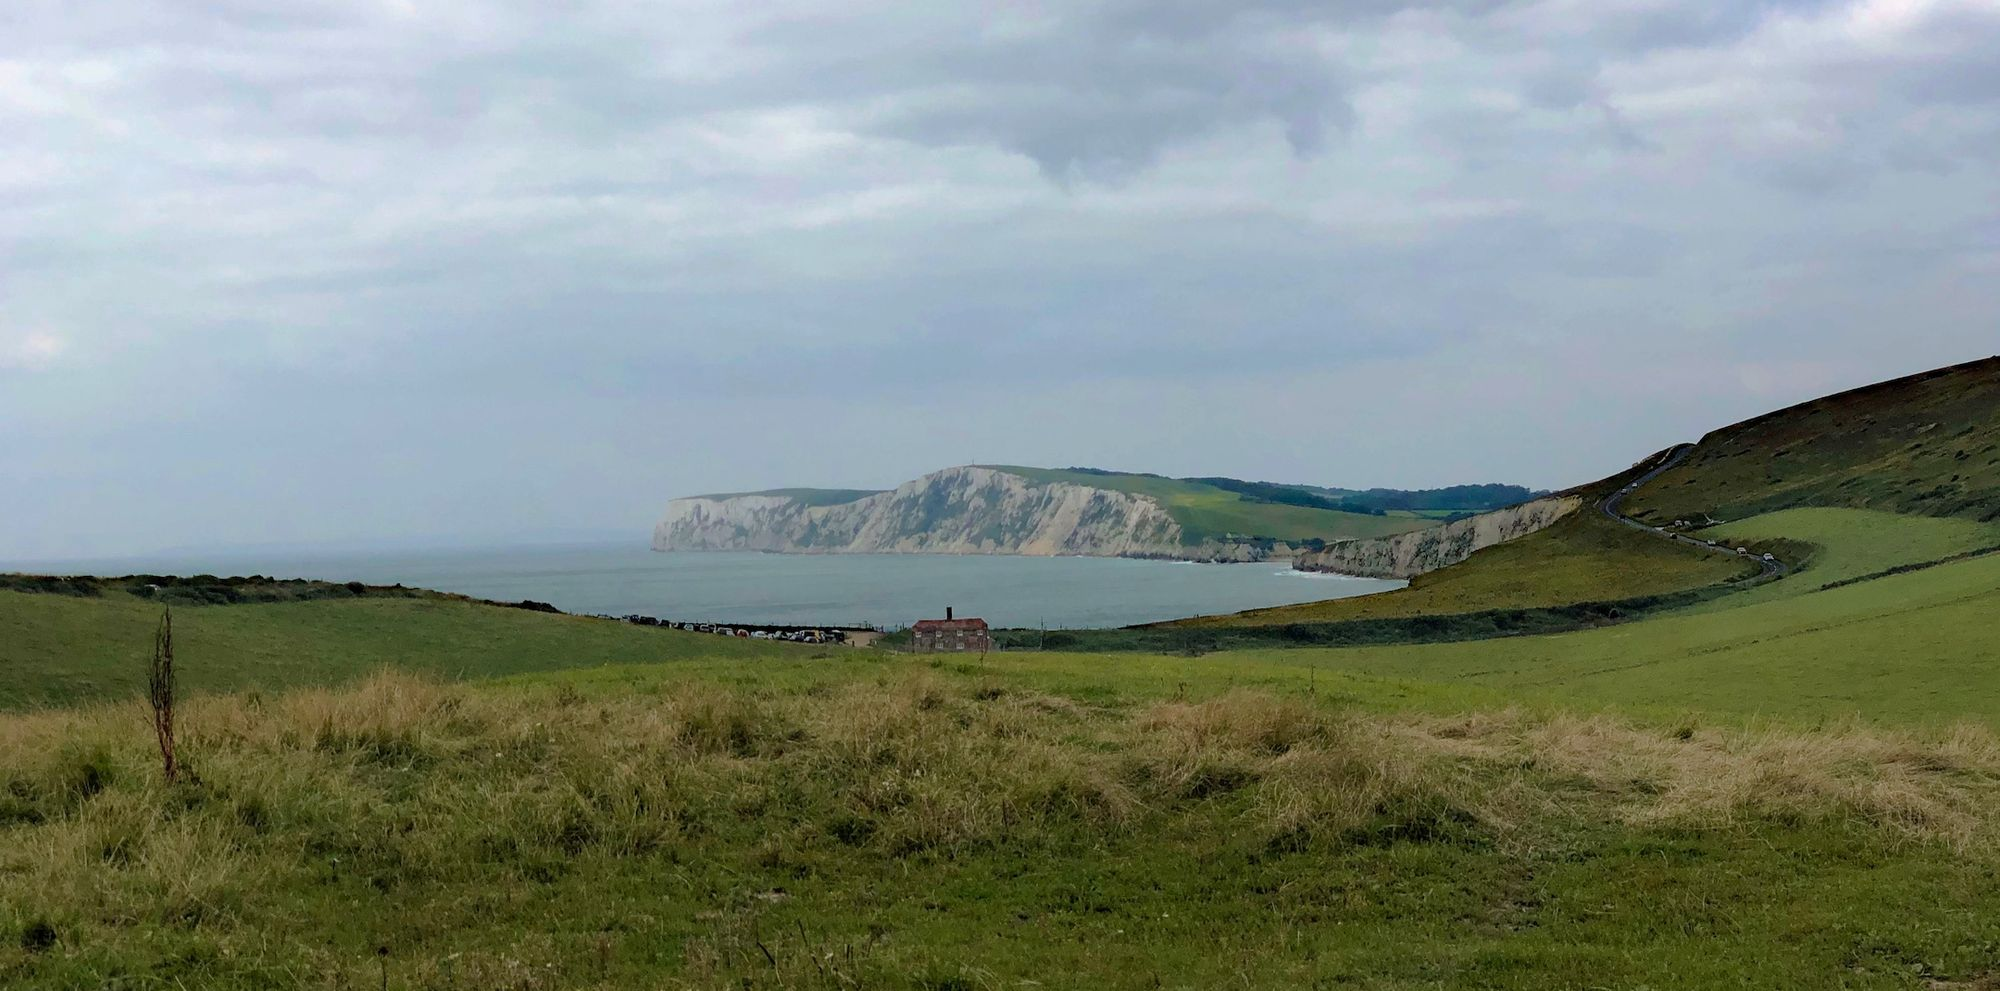 A view of a bay on the west coast of the Isle of Wight.